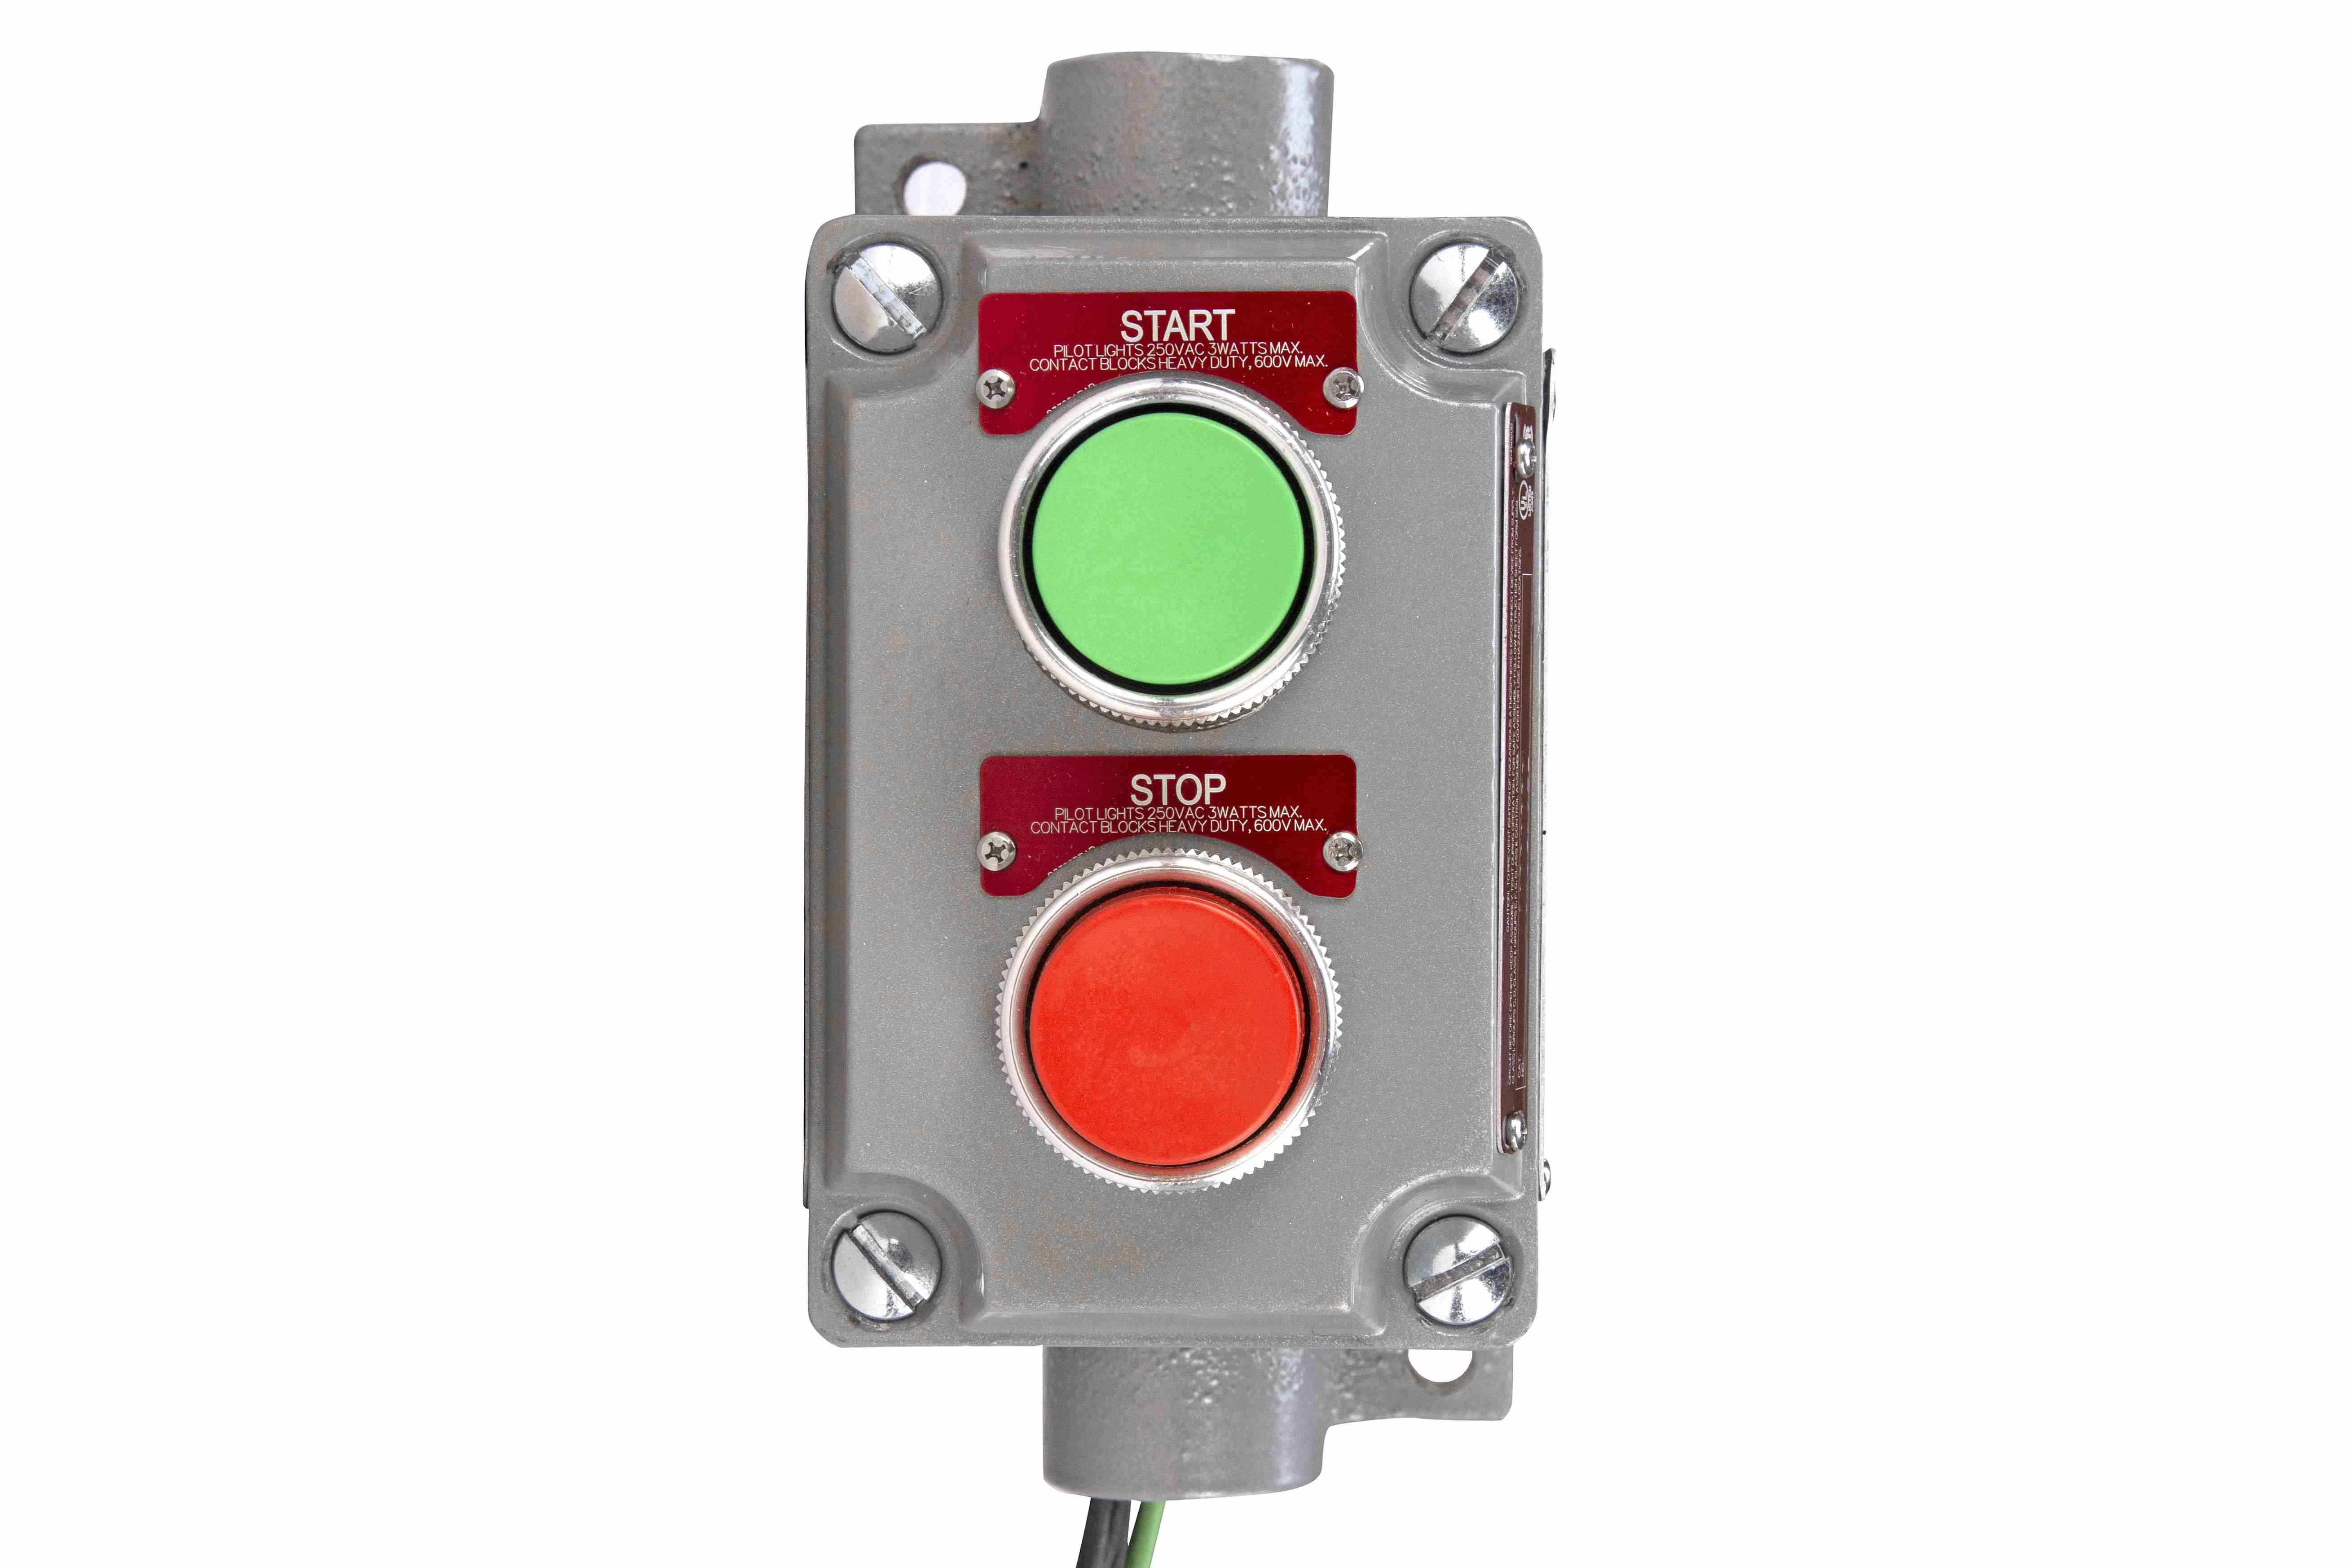 Explosion proof push button 480v stop start switch c1d1 for Class 1 div 2 motor starter